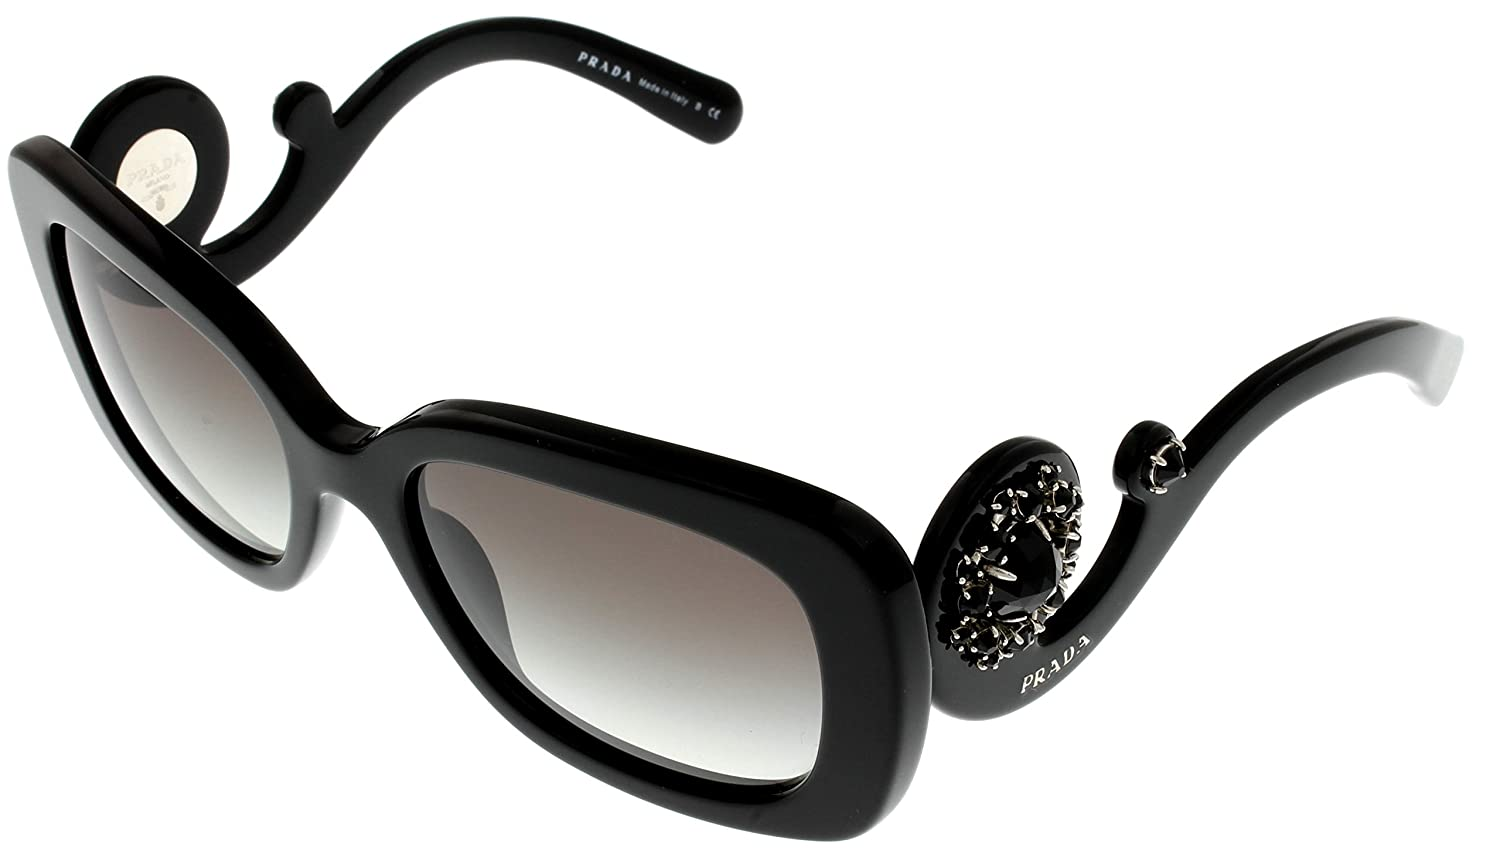 95a14f31927 Amazon.com  Prada Milano Sunglasses Women PR33PS 1ABOA7 Rectangular   Clothing